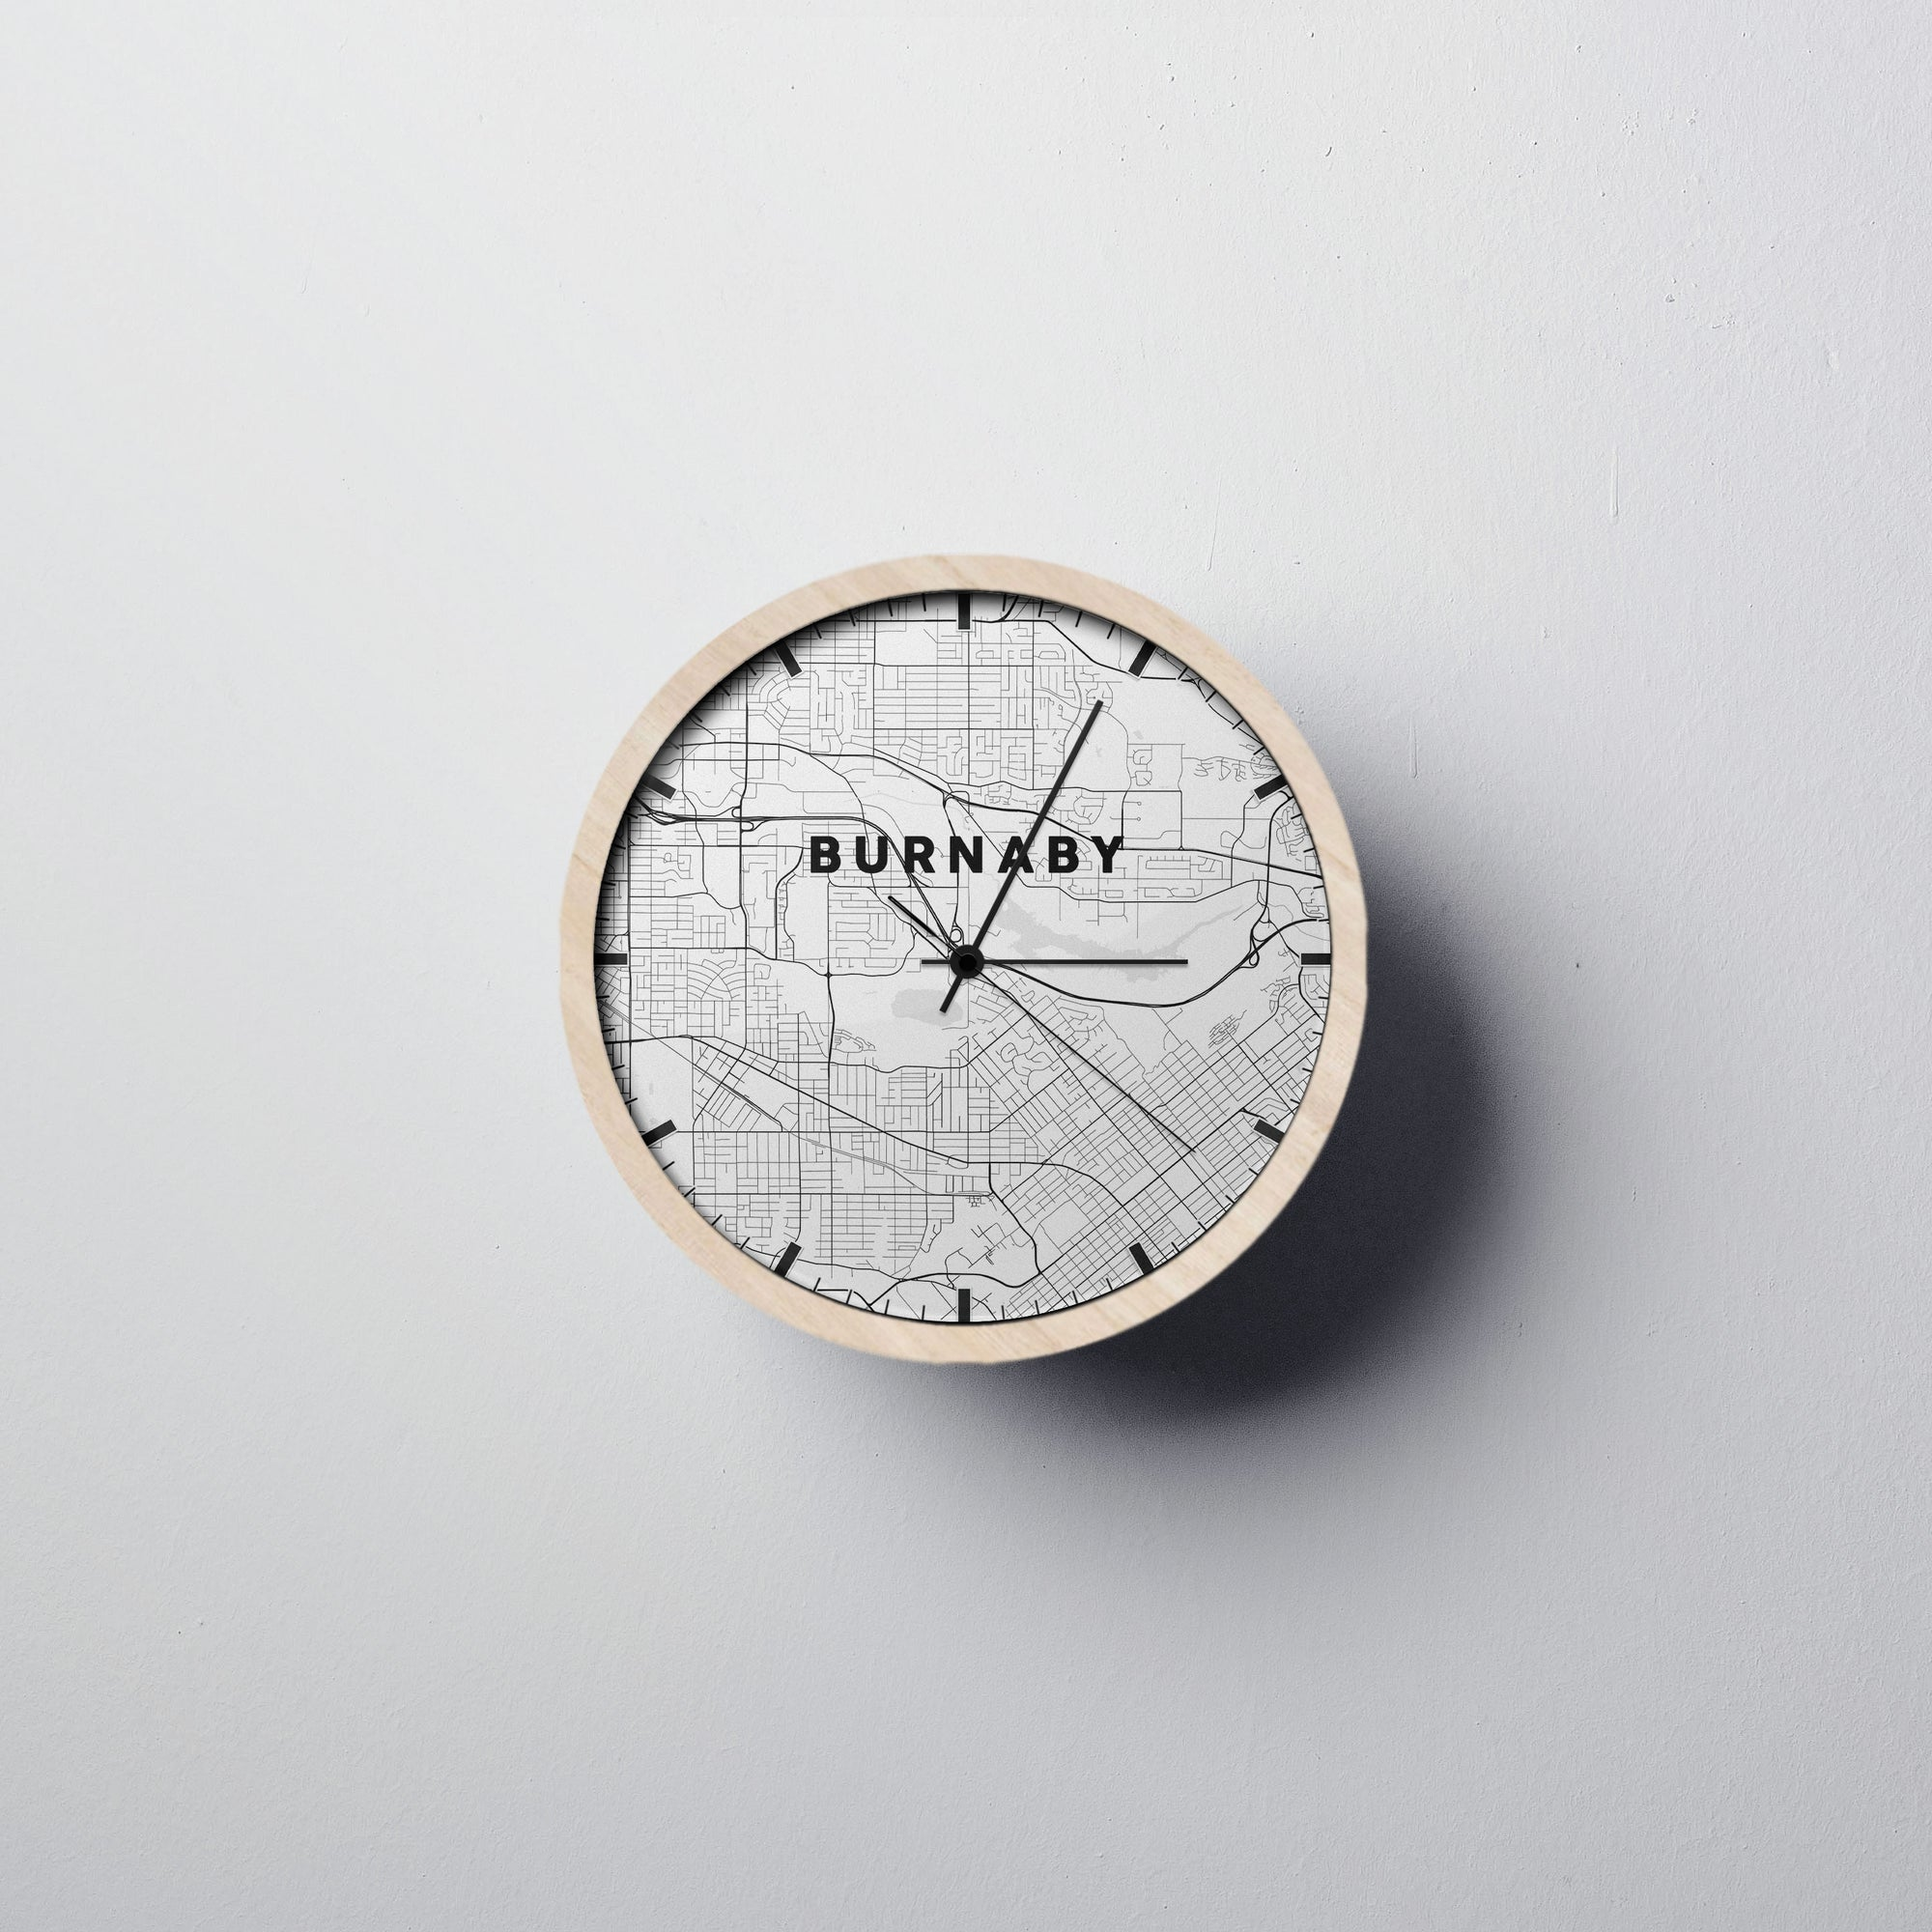 Burnaby Wall Clock - Point Two Design